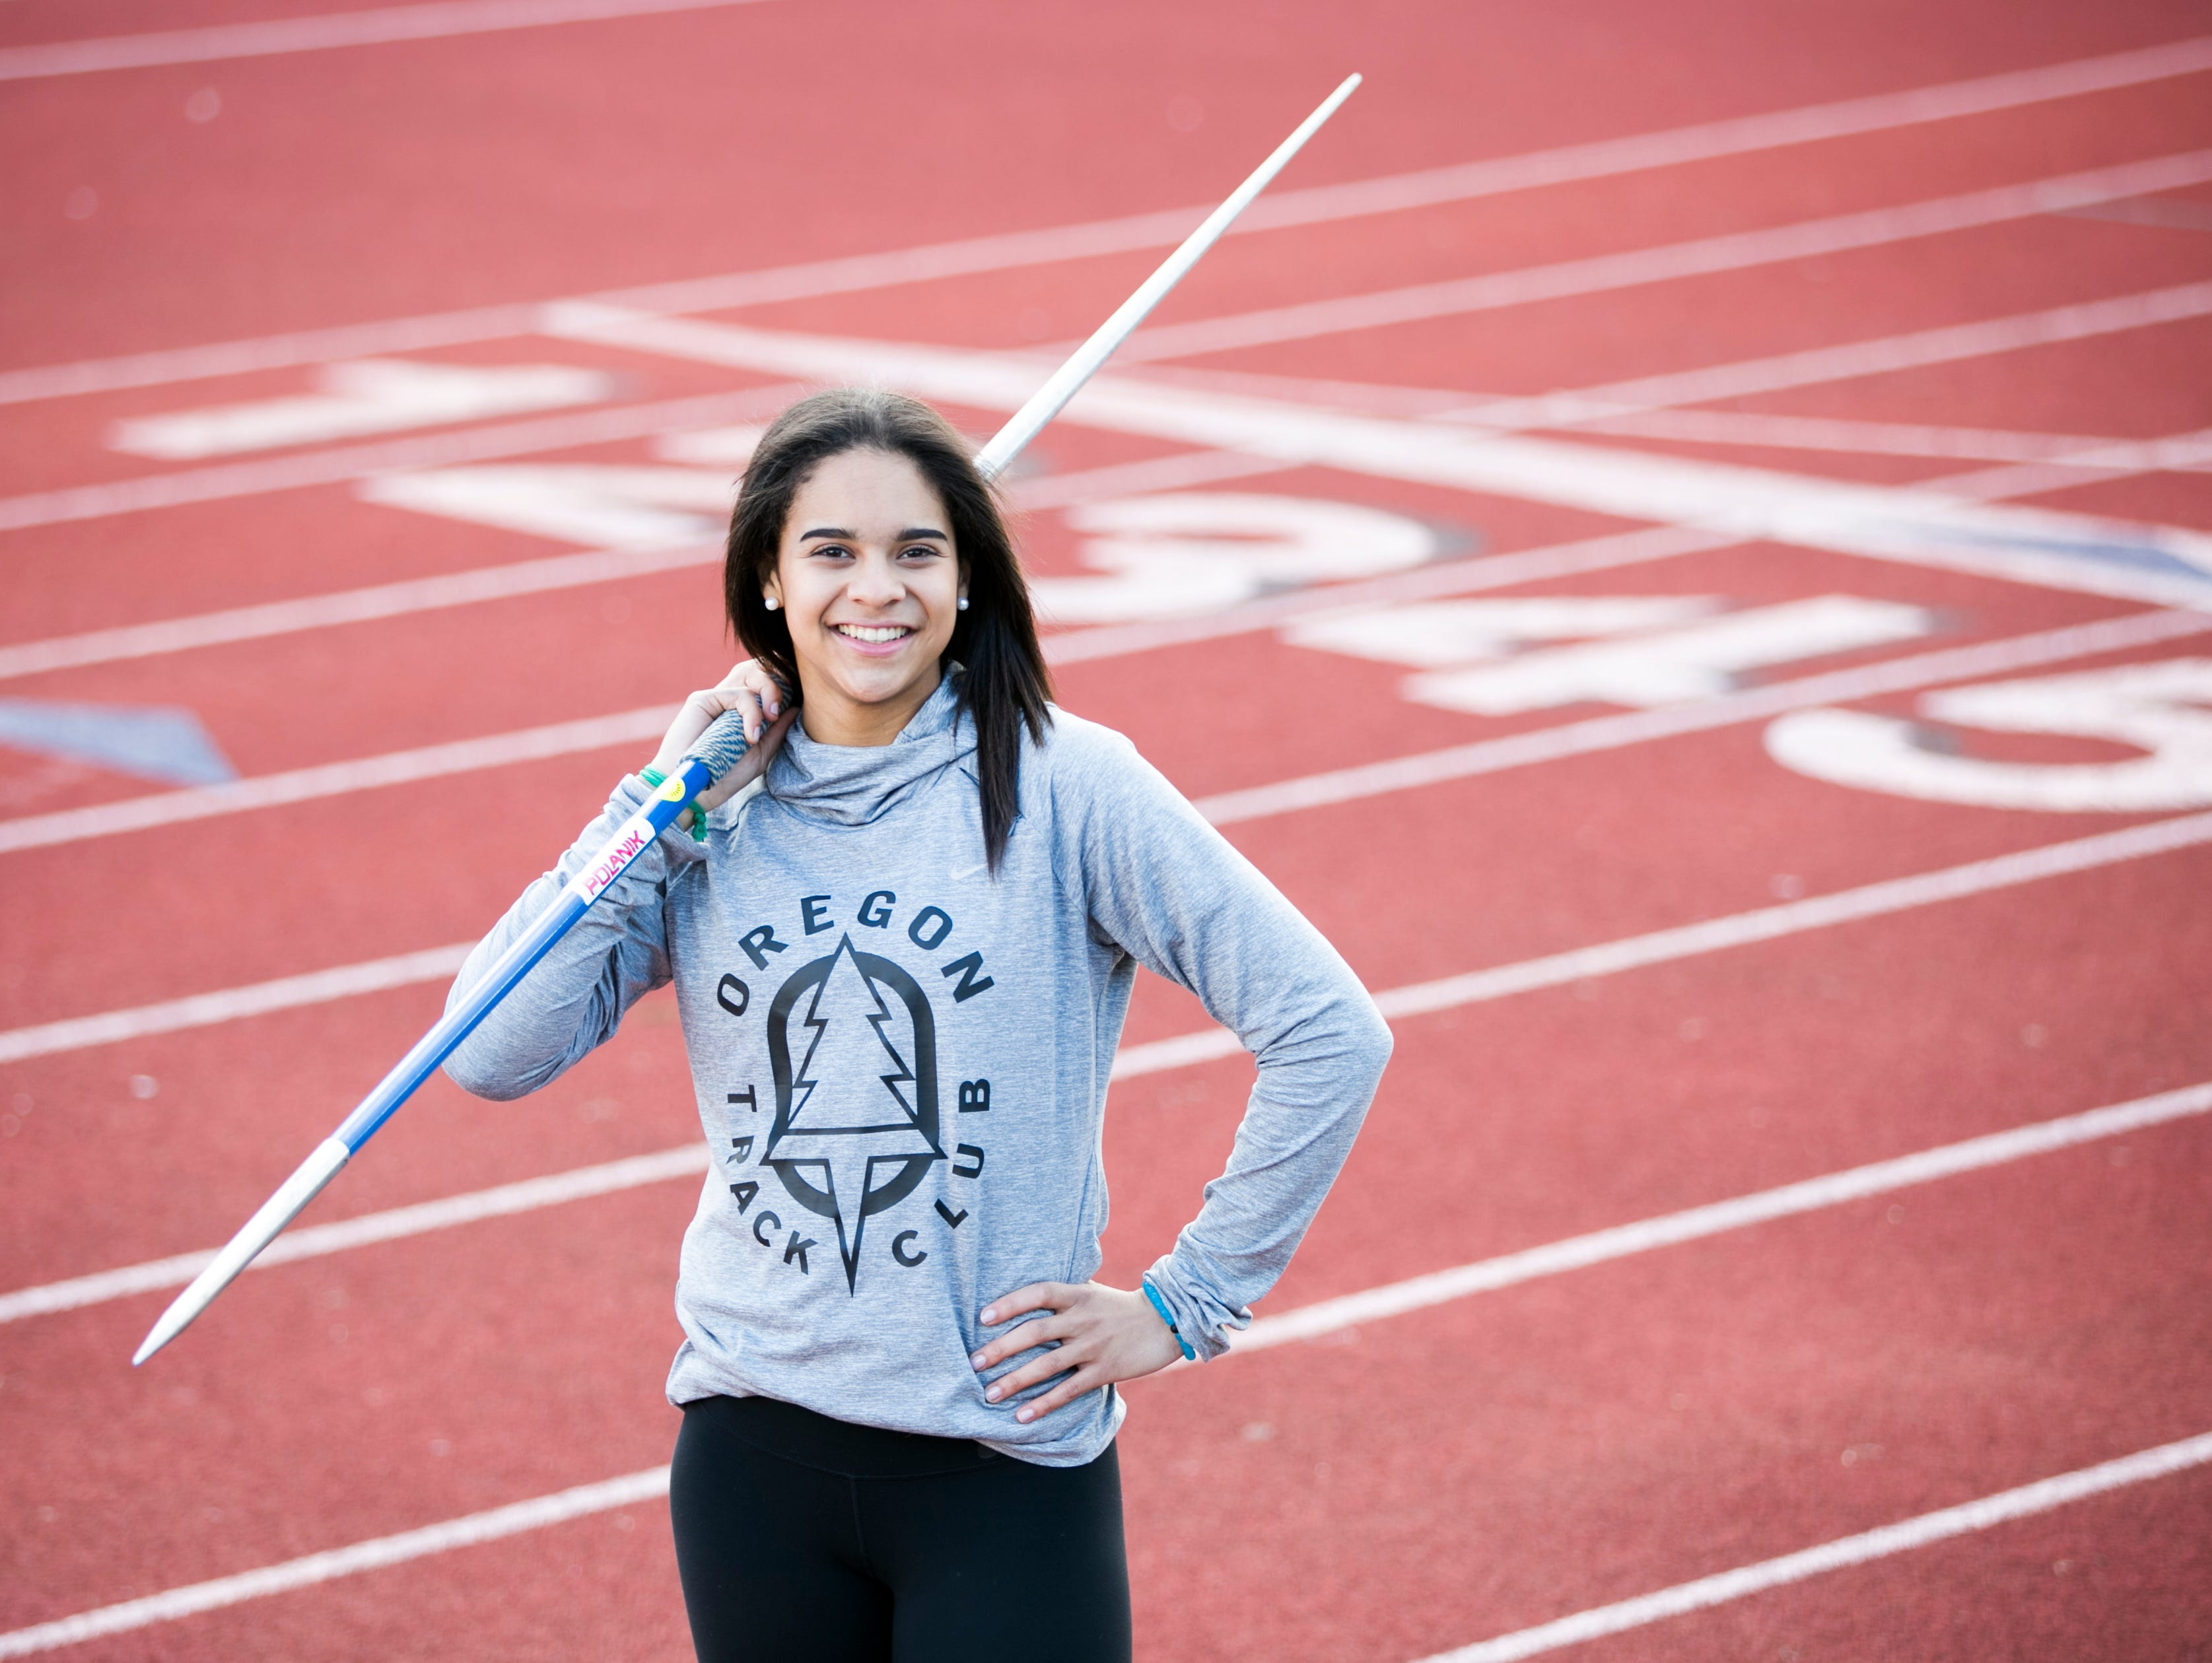 """West Salem High School student Keira McCarrell is known as one of the top javelin throwers in Oregon, but also has a future in the heptathlon. According to West Salem throws coach Derek Bruey-Finck, McCarrell is """"the proverbial heptathelete who can basically do it all."""""""